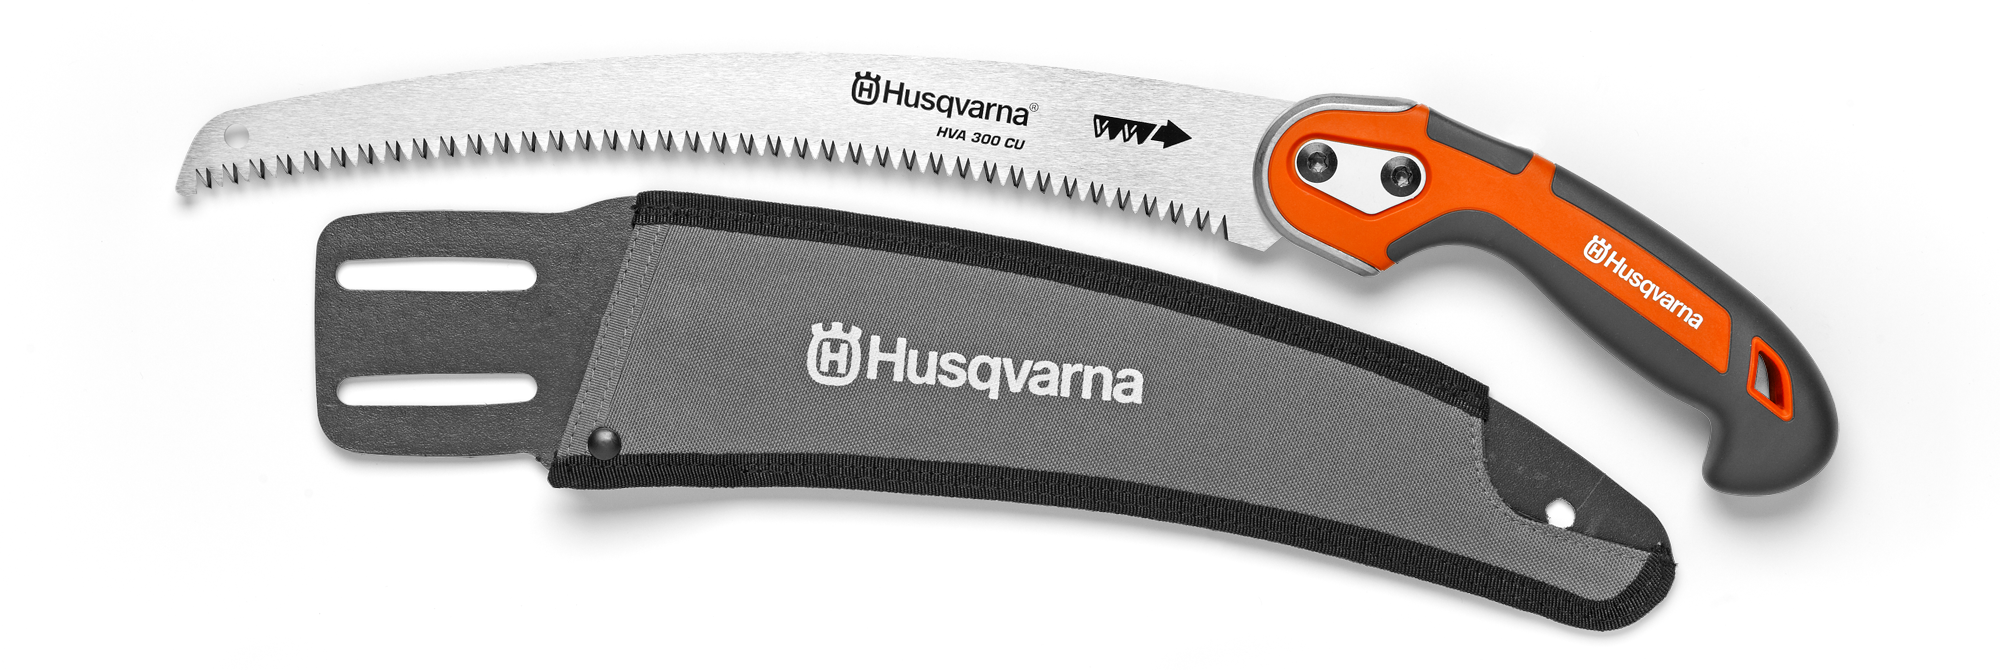 Image for 300CU Curved Fixed Pruning Saw                                                                                                   from HusqvarnaB2C